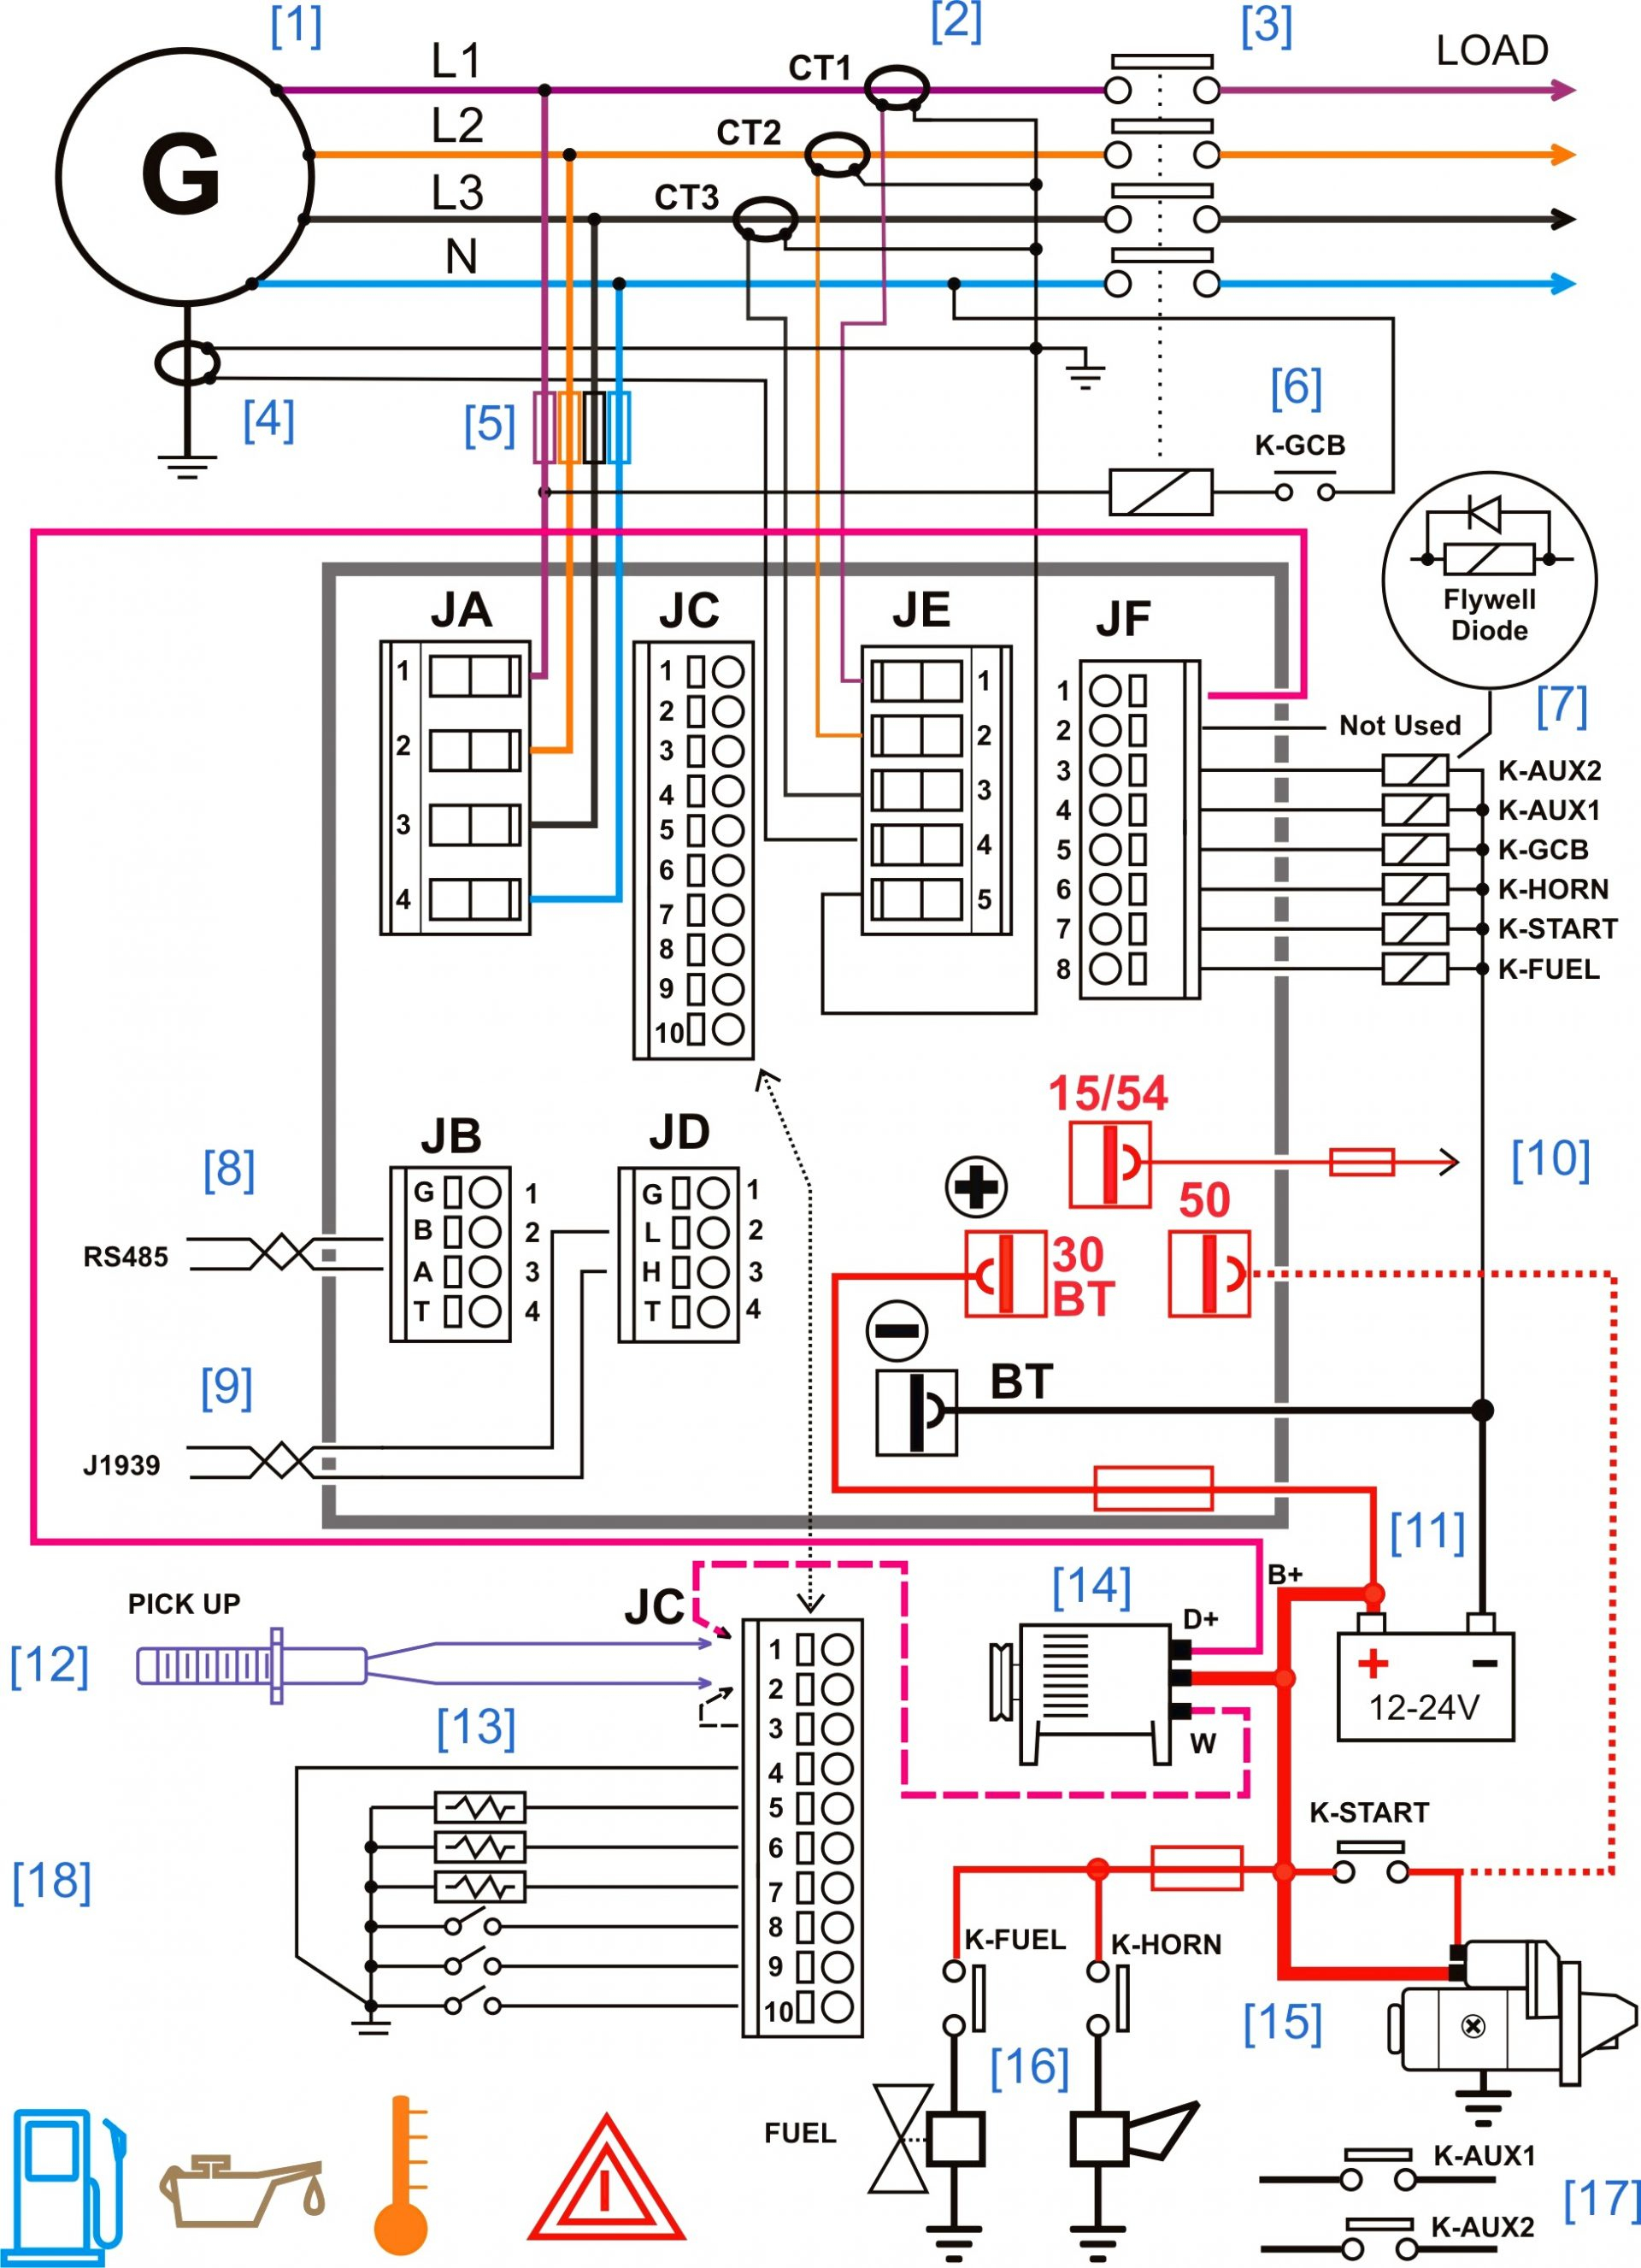 fire alarm wiring diagram Collection-Fire Alarm Wiring Diagram Best Troubleshooting Fire Alarms Image Collections Free 5-i